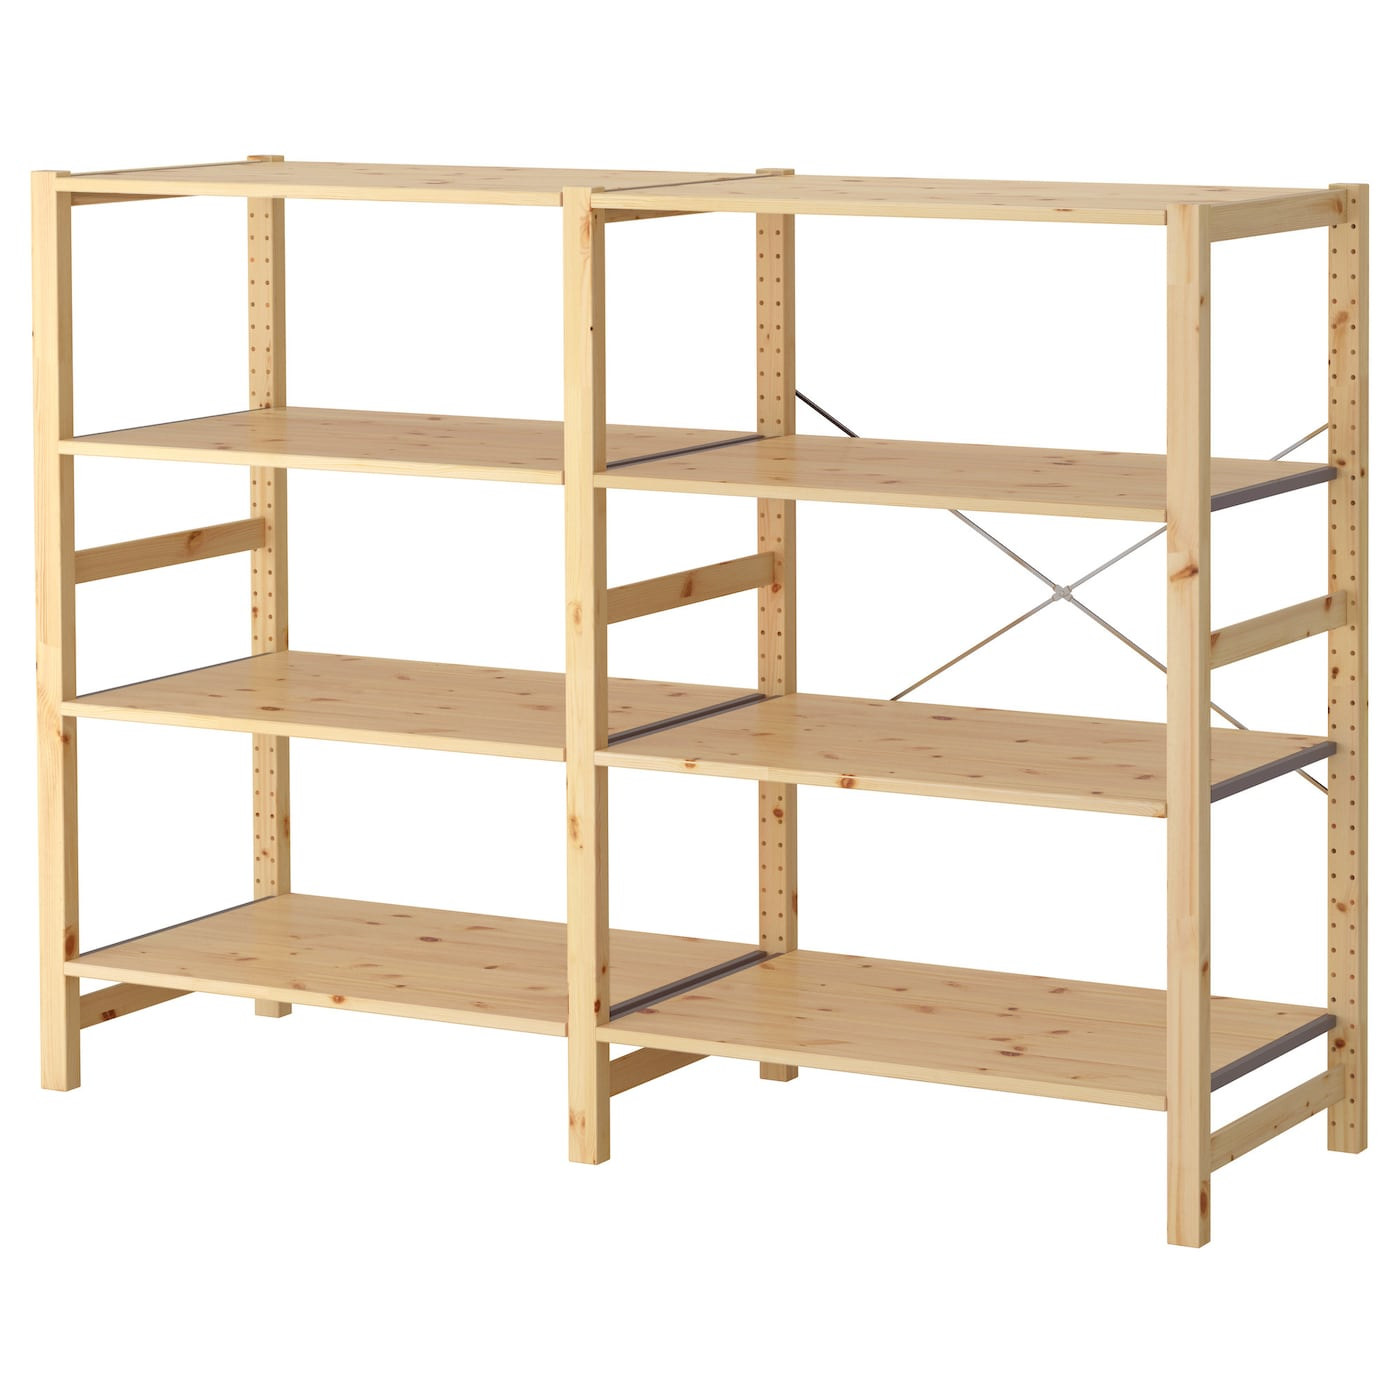 ivar 2 sections shelves pine 174x50x124 cm ikea. Black Bedroom Furniture Sets. Home Design Ideas